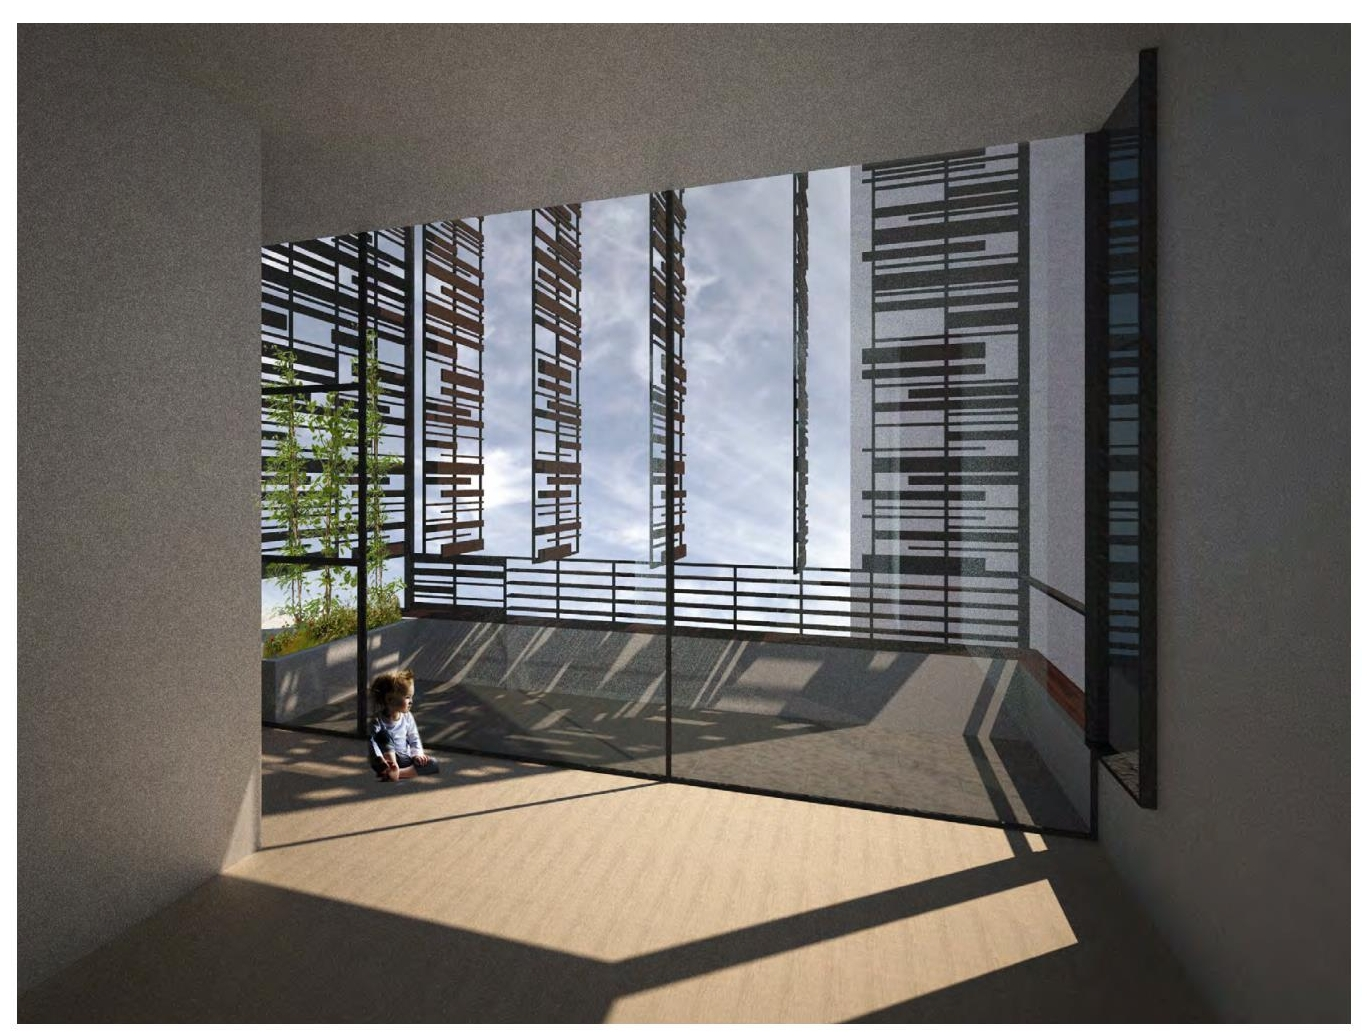 Rendering of a baby looking out windows leading to a private balcony featuring a porous trellis system with operable openings for privacy. MEP by 2L Engineering..